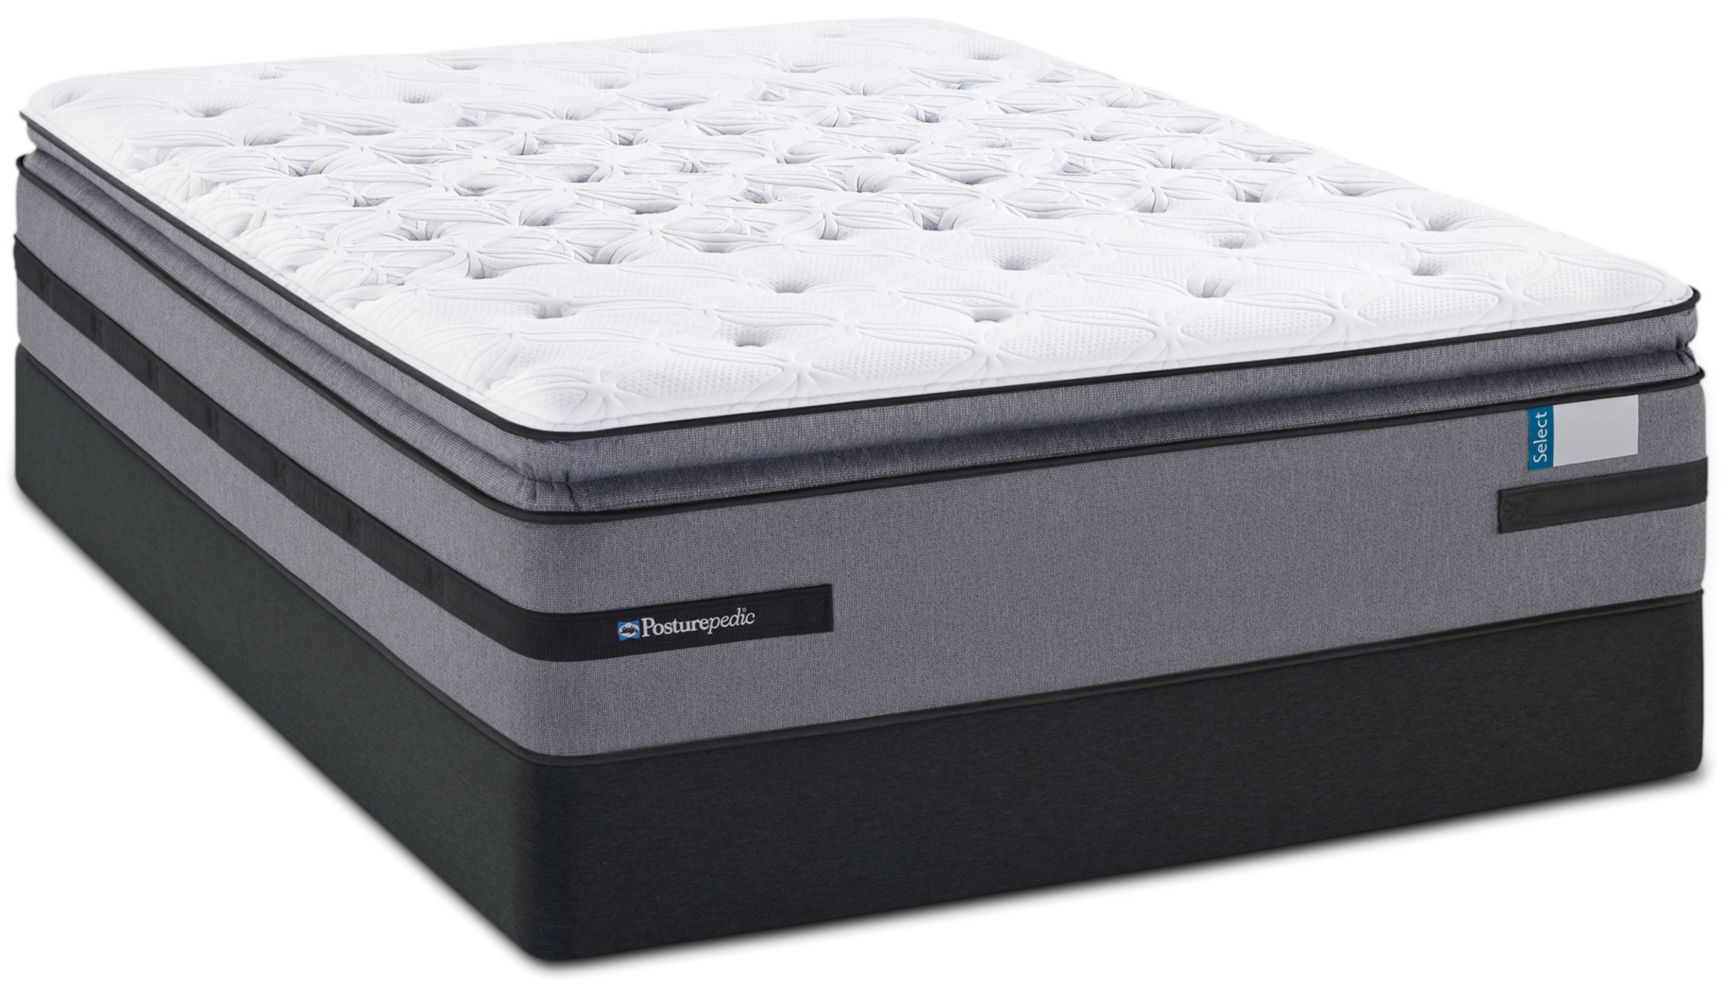 Sealy Posturepedic Select Yonge Street Plush Mattress